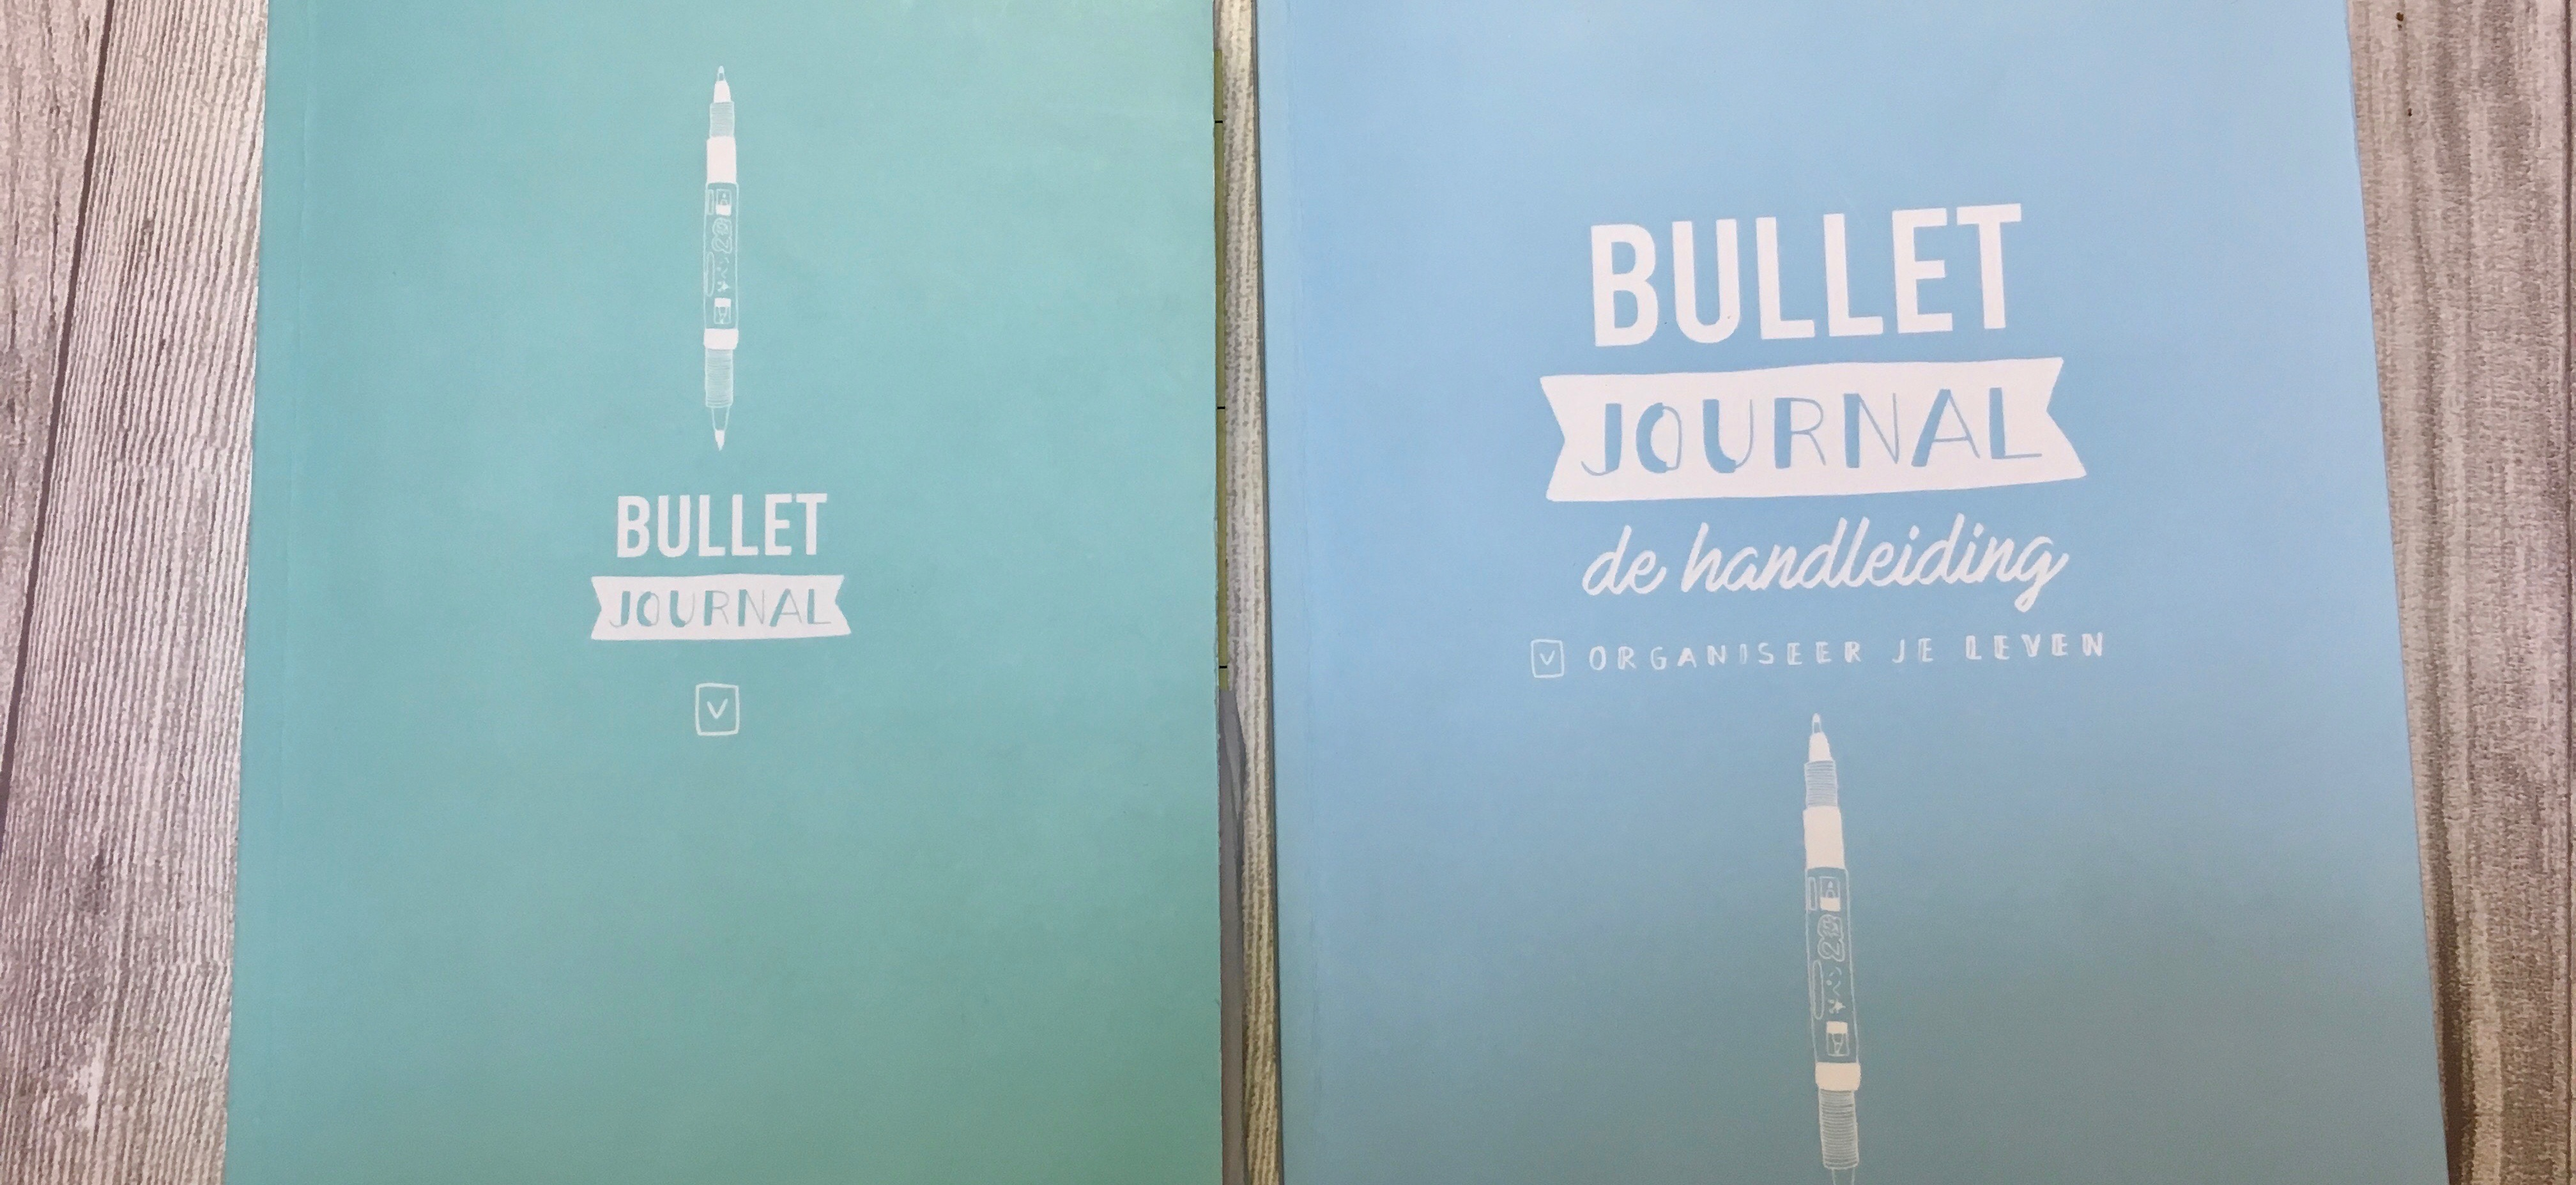 Review: Bullet Journal – de handleiding